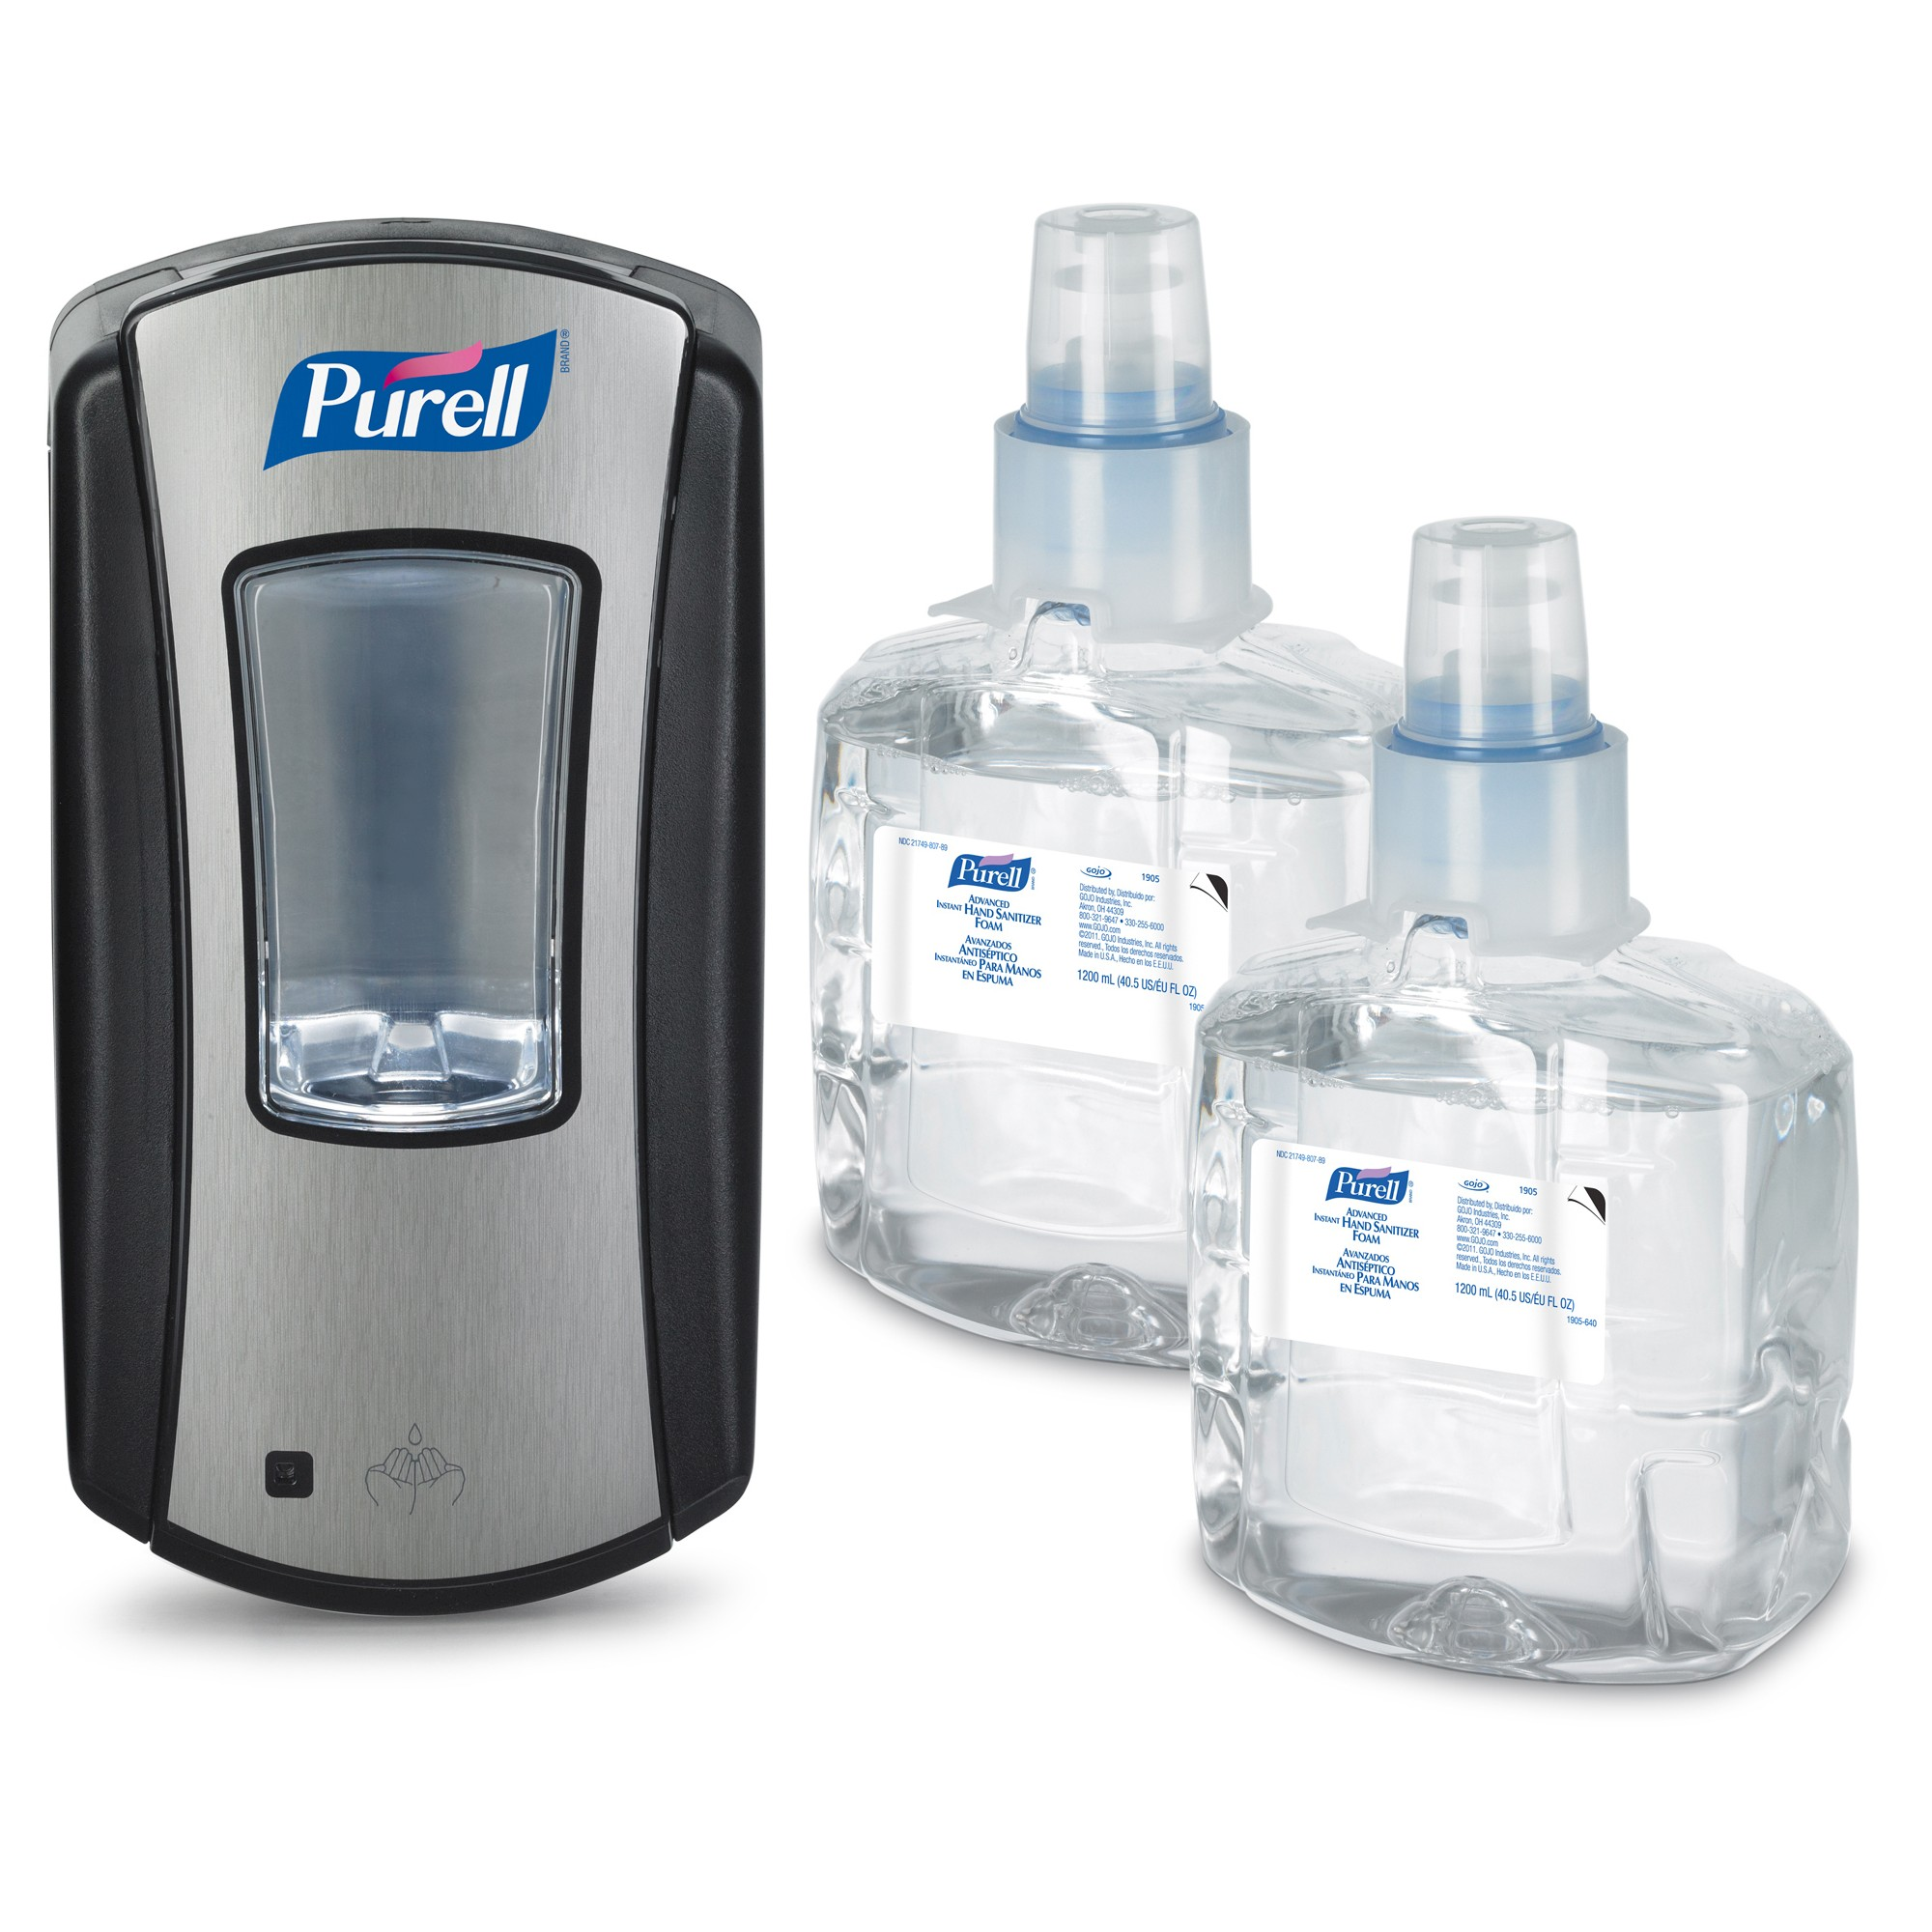 Purell Advanced Hand Sanitizer Foam Ltx 12 Starter Kit Hand